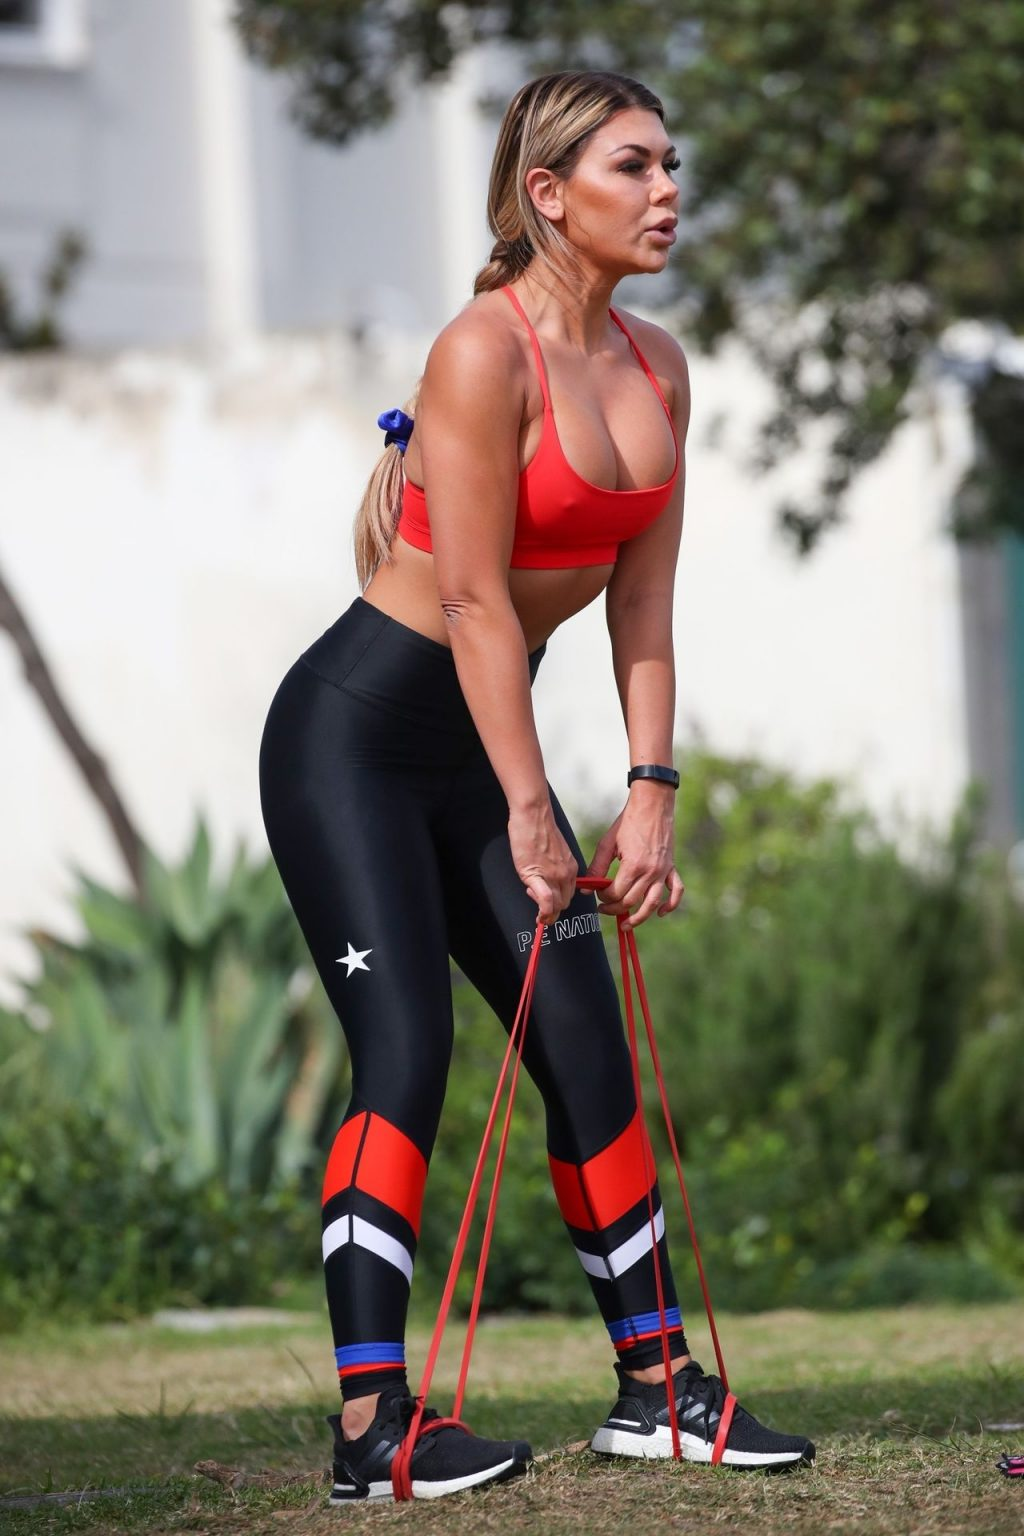 Kirralee Morris Was Pictured Working Out in a Park in North Bondi (82 Photos)